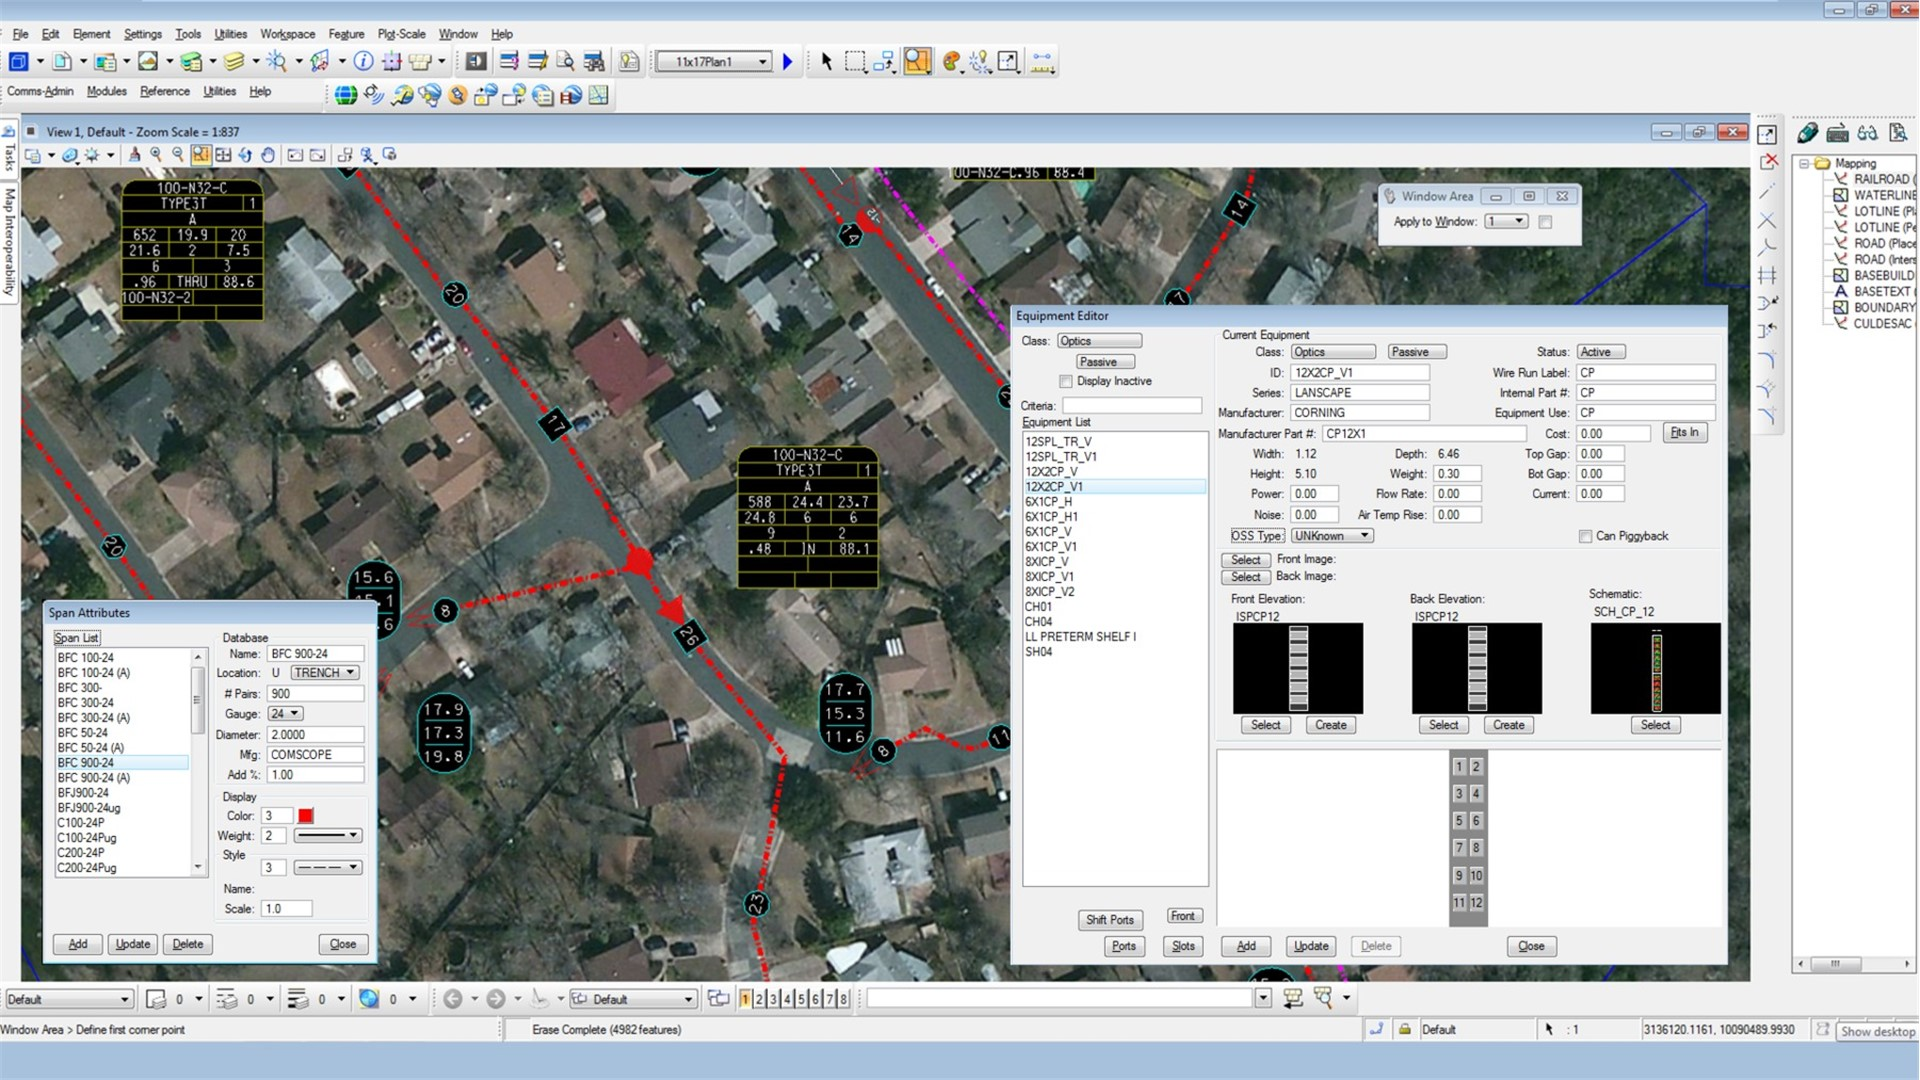 Coaxial network design and gis software bentley coax read more ccuart Gallery